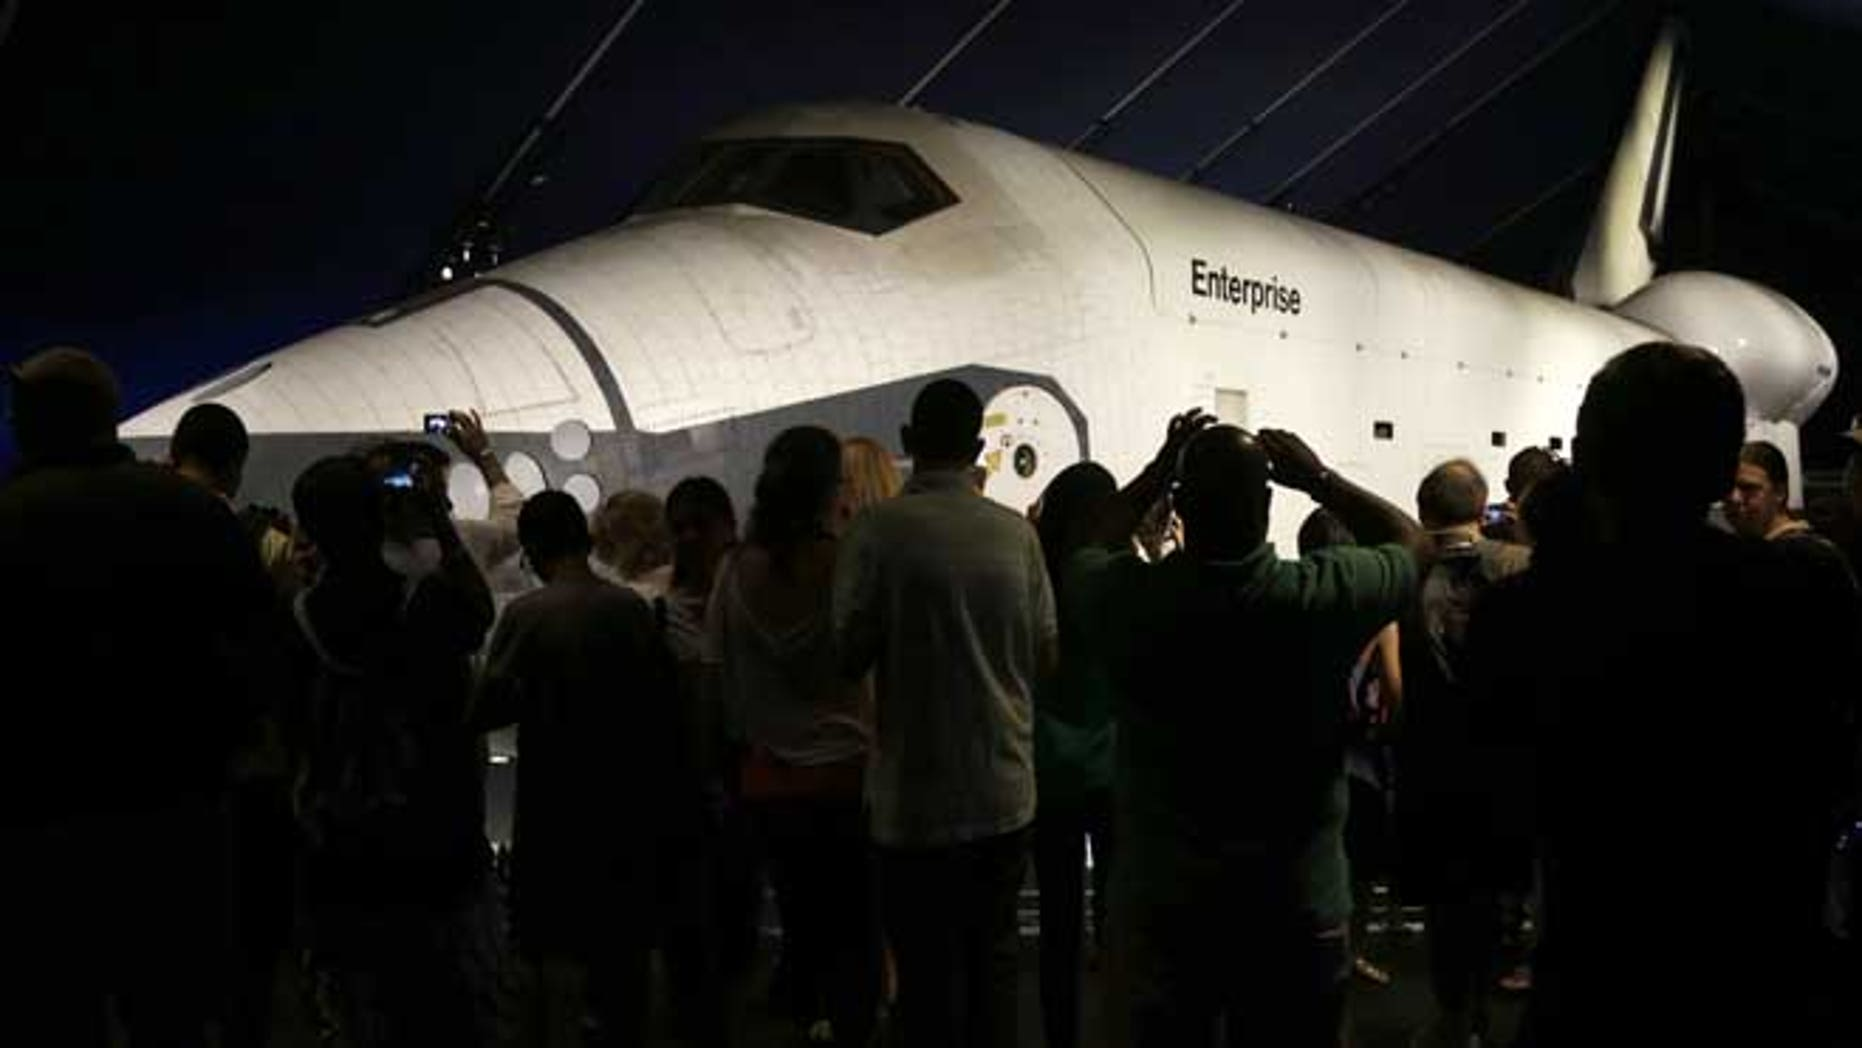 July 10, 2013: Visitors look at the space shuttle Enterprise in its newly completed pavilion on the deck of the Intrepid Sea, Air & Space Museum in New York.